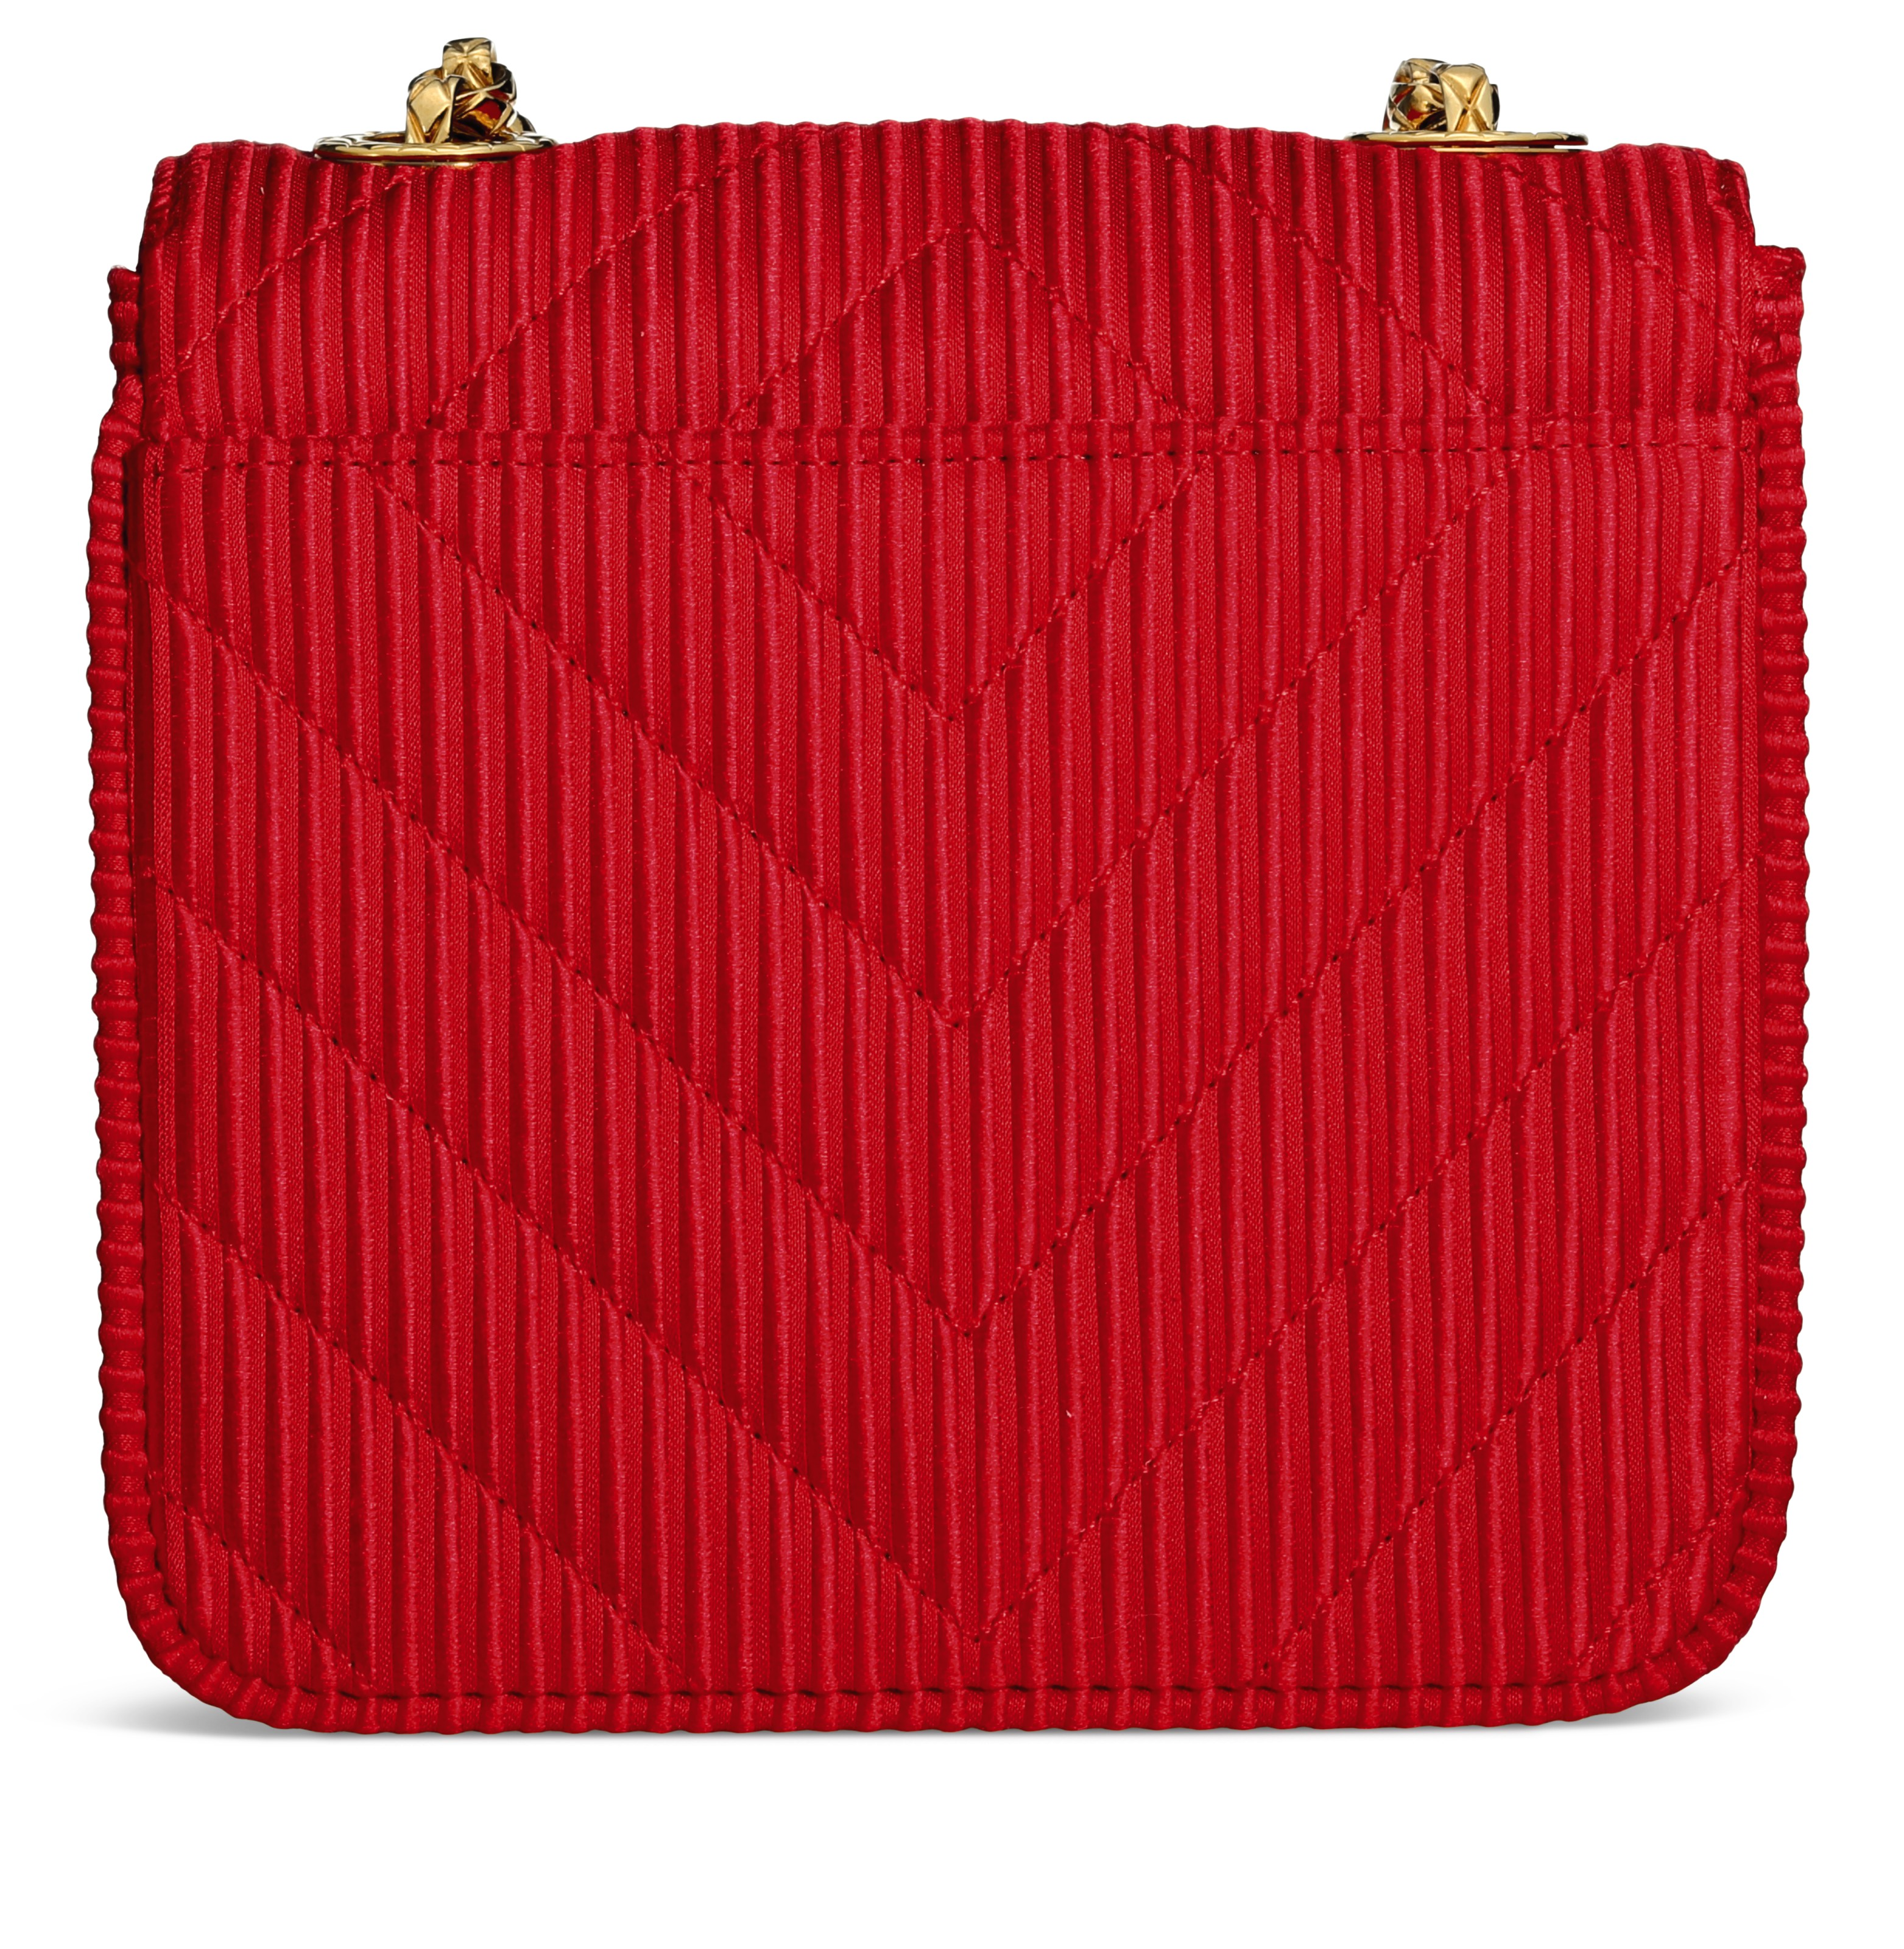 af9eeb38f1ed6f A RED SILK CHEVRON ENVELOPE MINI FLAP BAG WITH GOLD HARDWARE ...